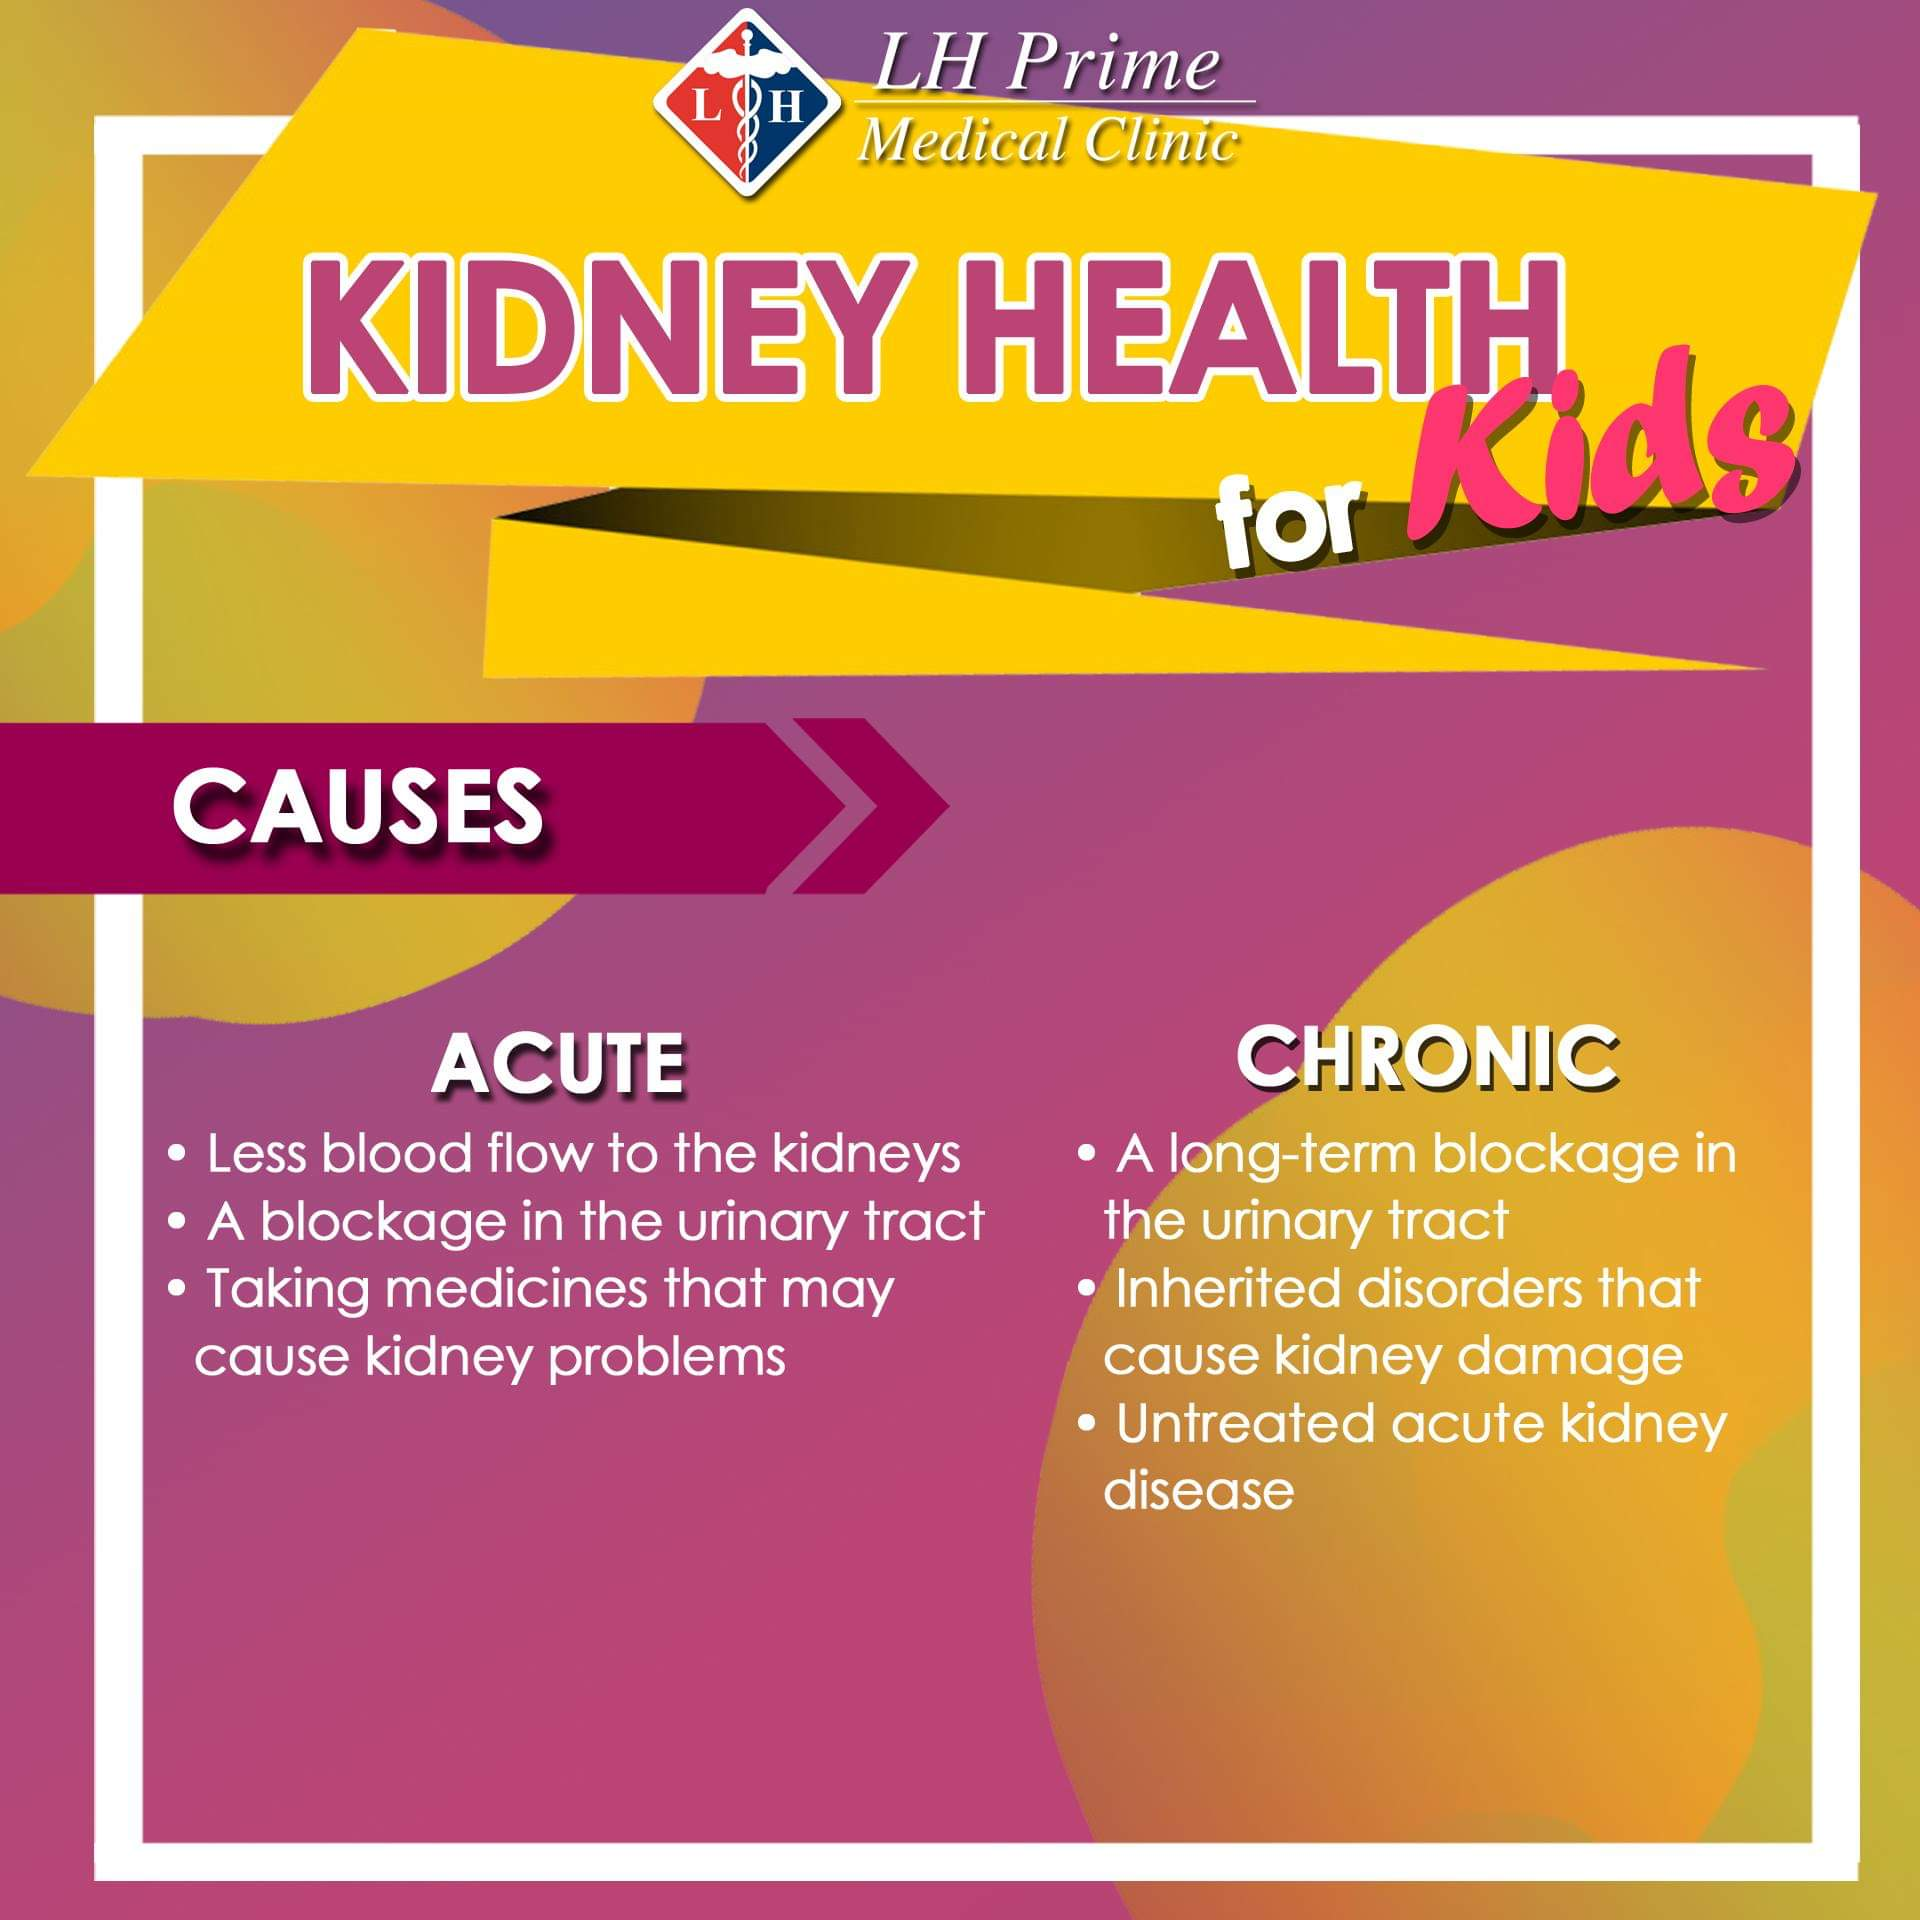 Kidney Health for Kids - Causes